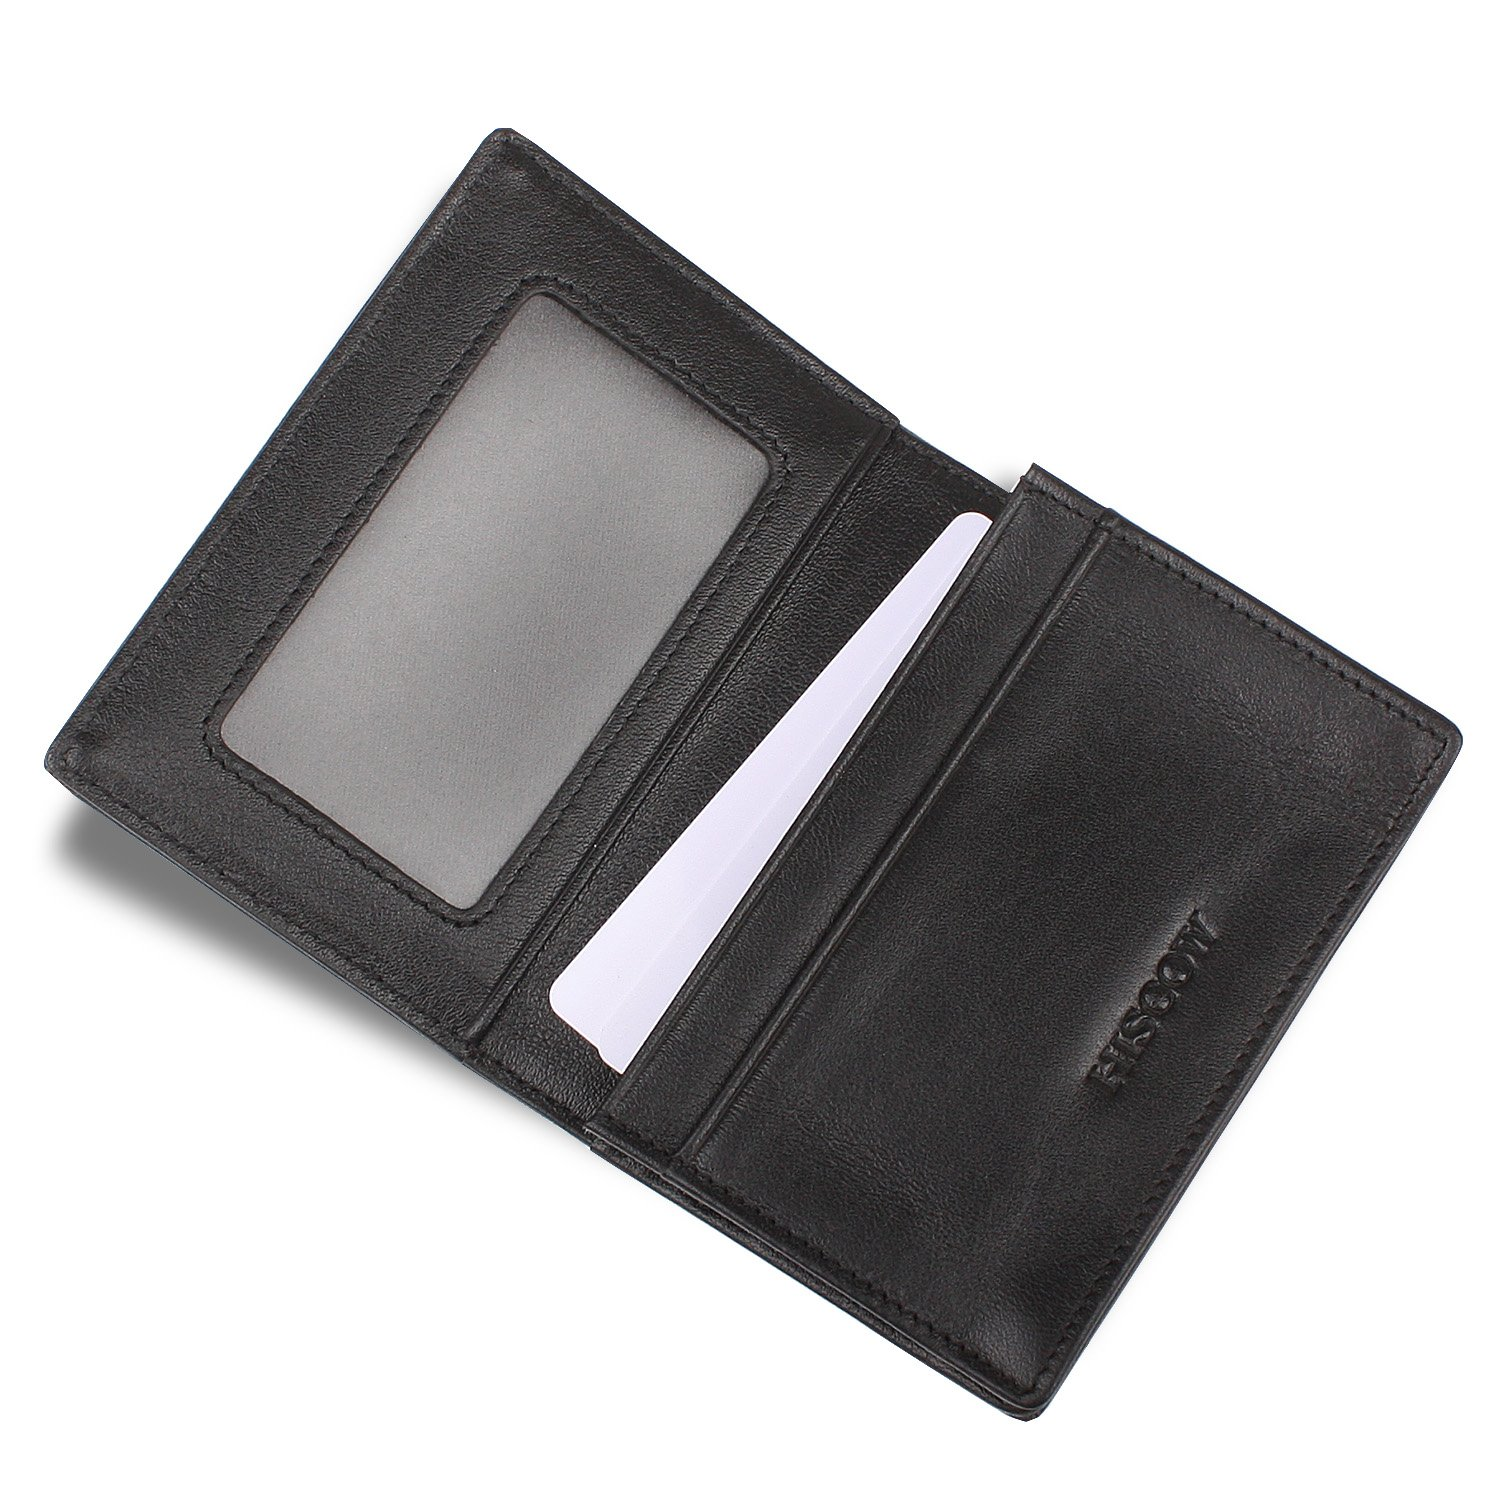 HISCOW Men's Business Card Holder with Large Compartment - Italian Calfskin by HISCOW (Image #5)